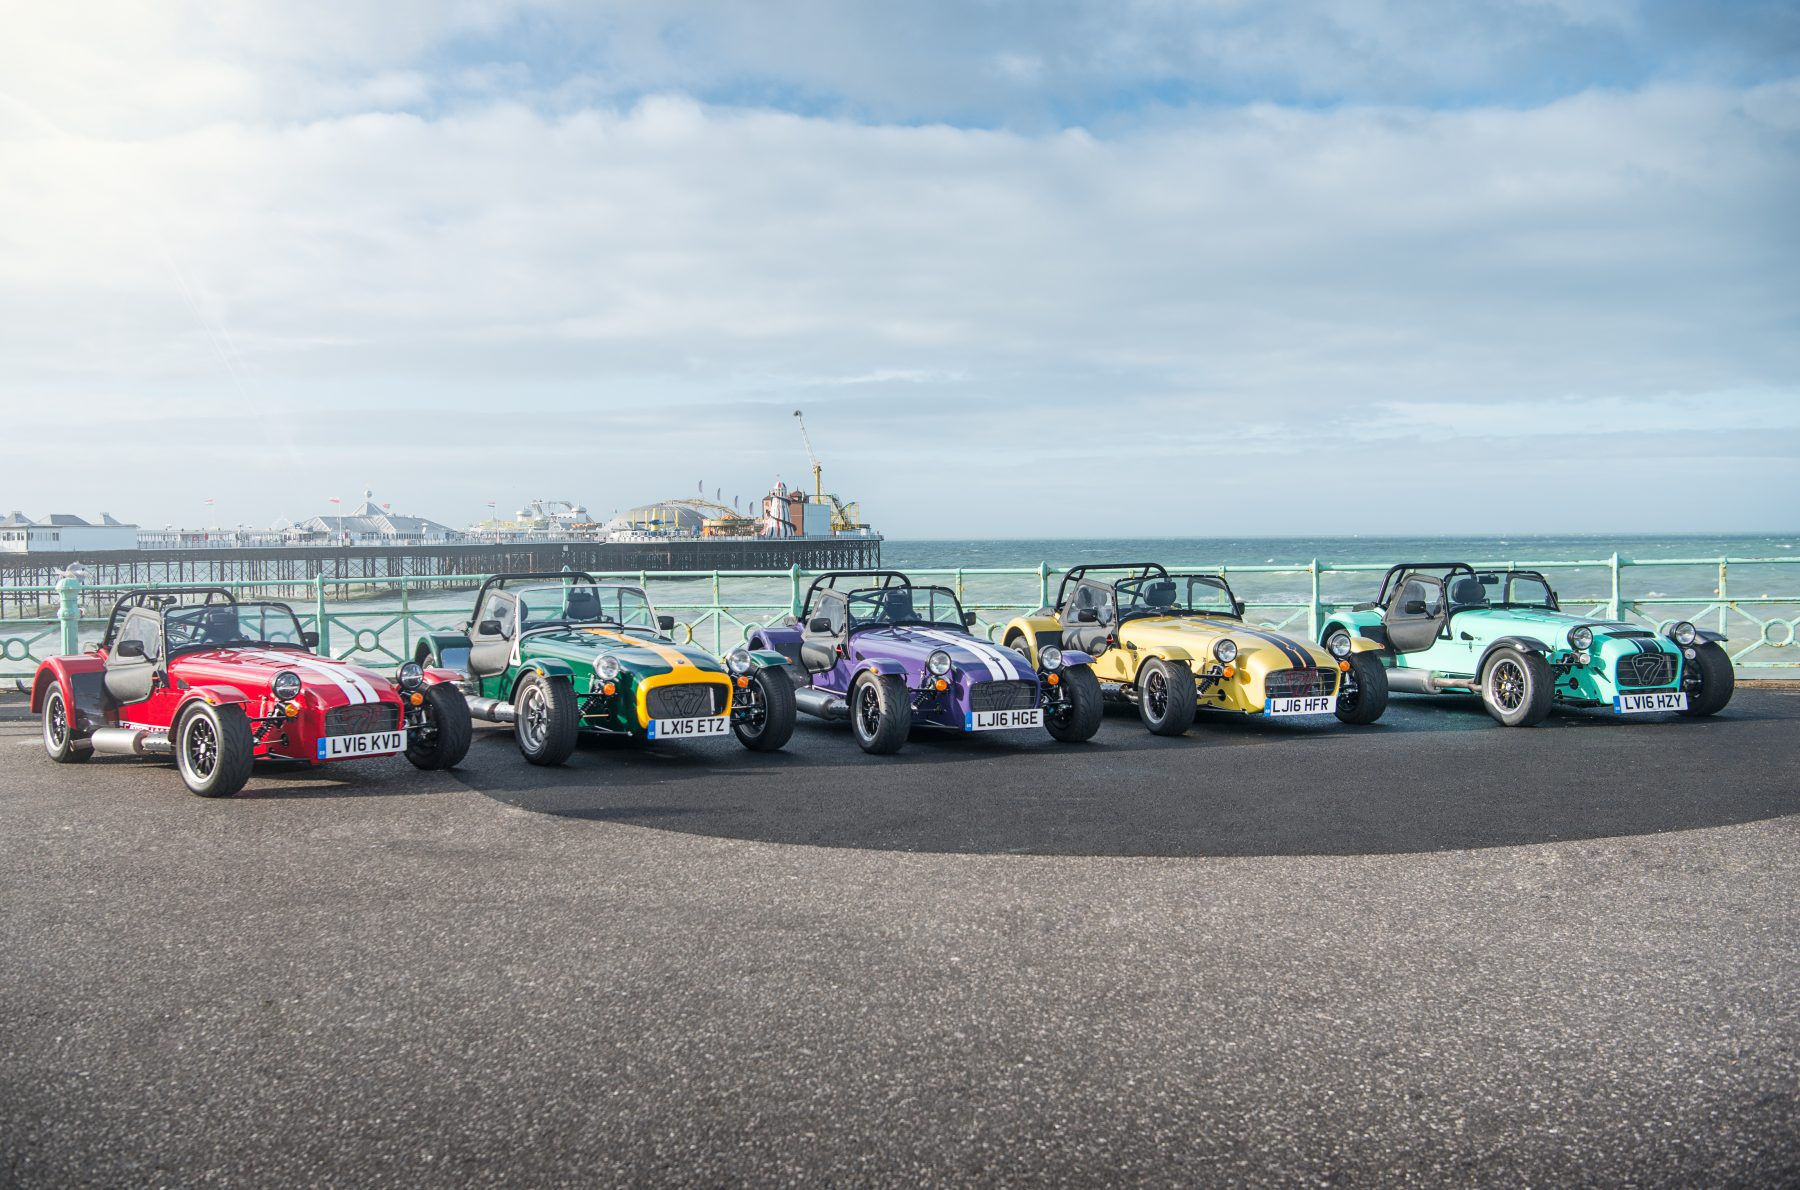 Five Caterham cars lined up